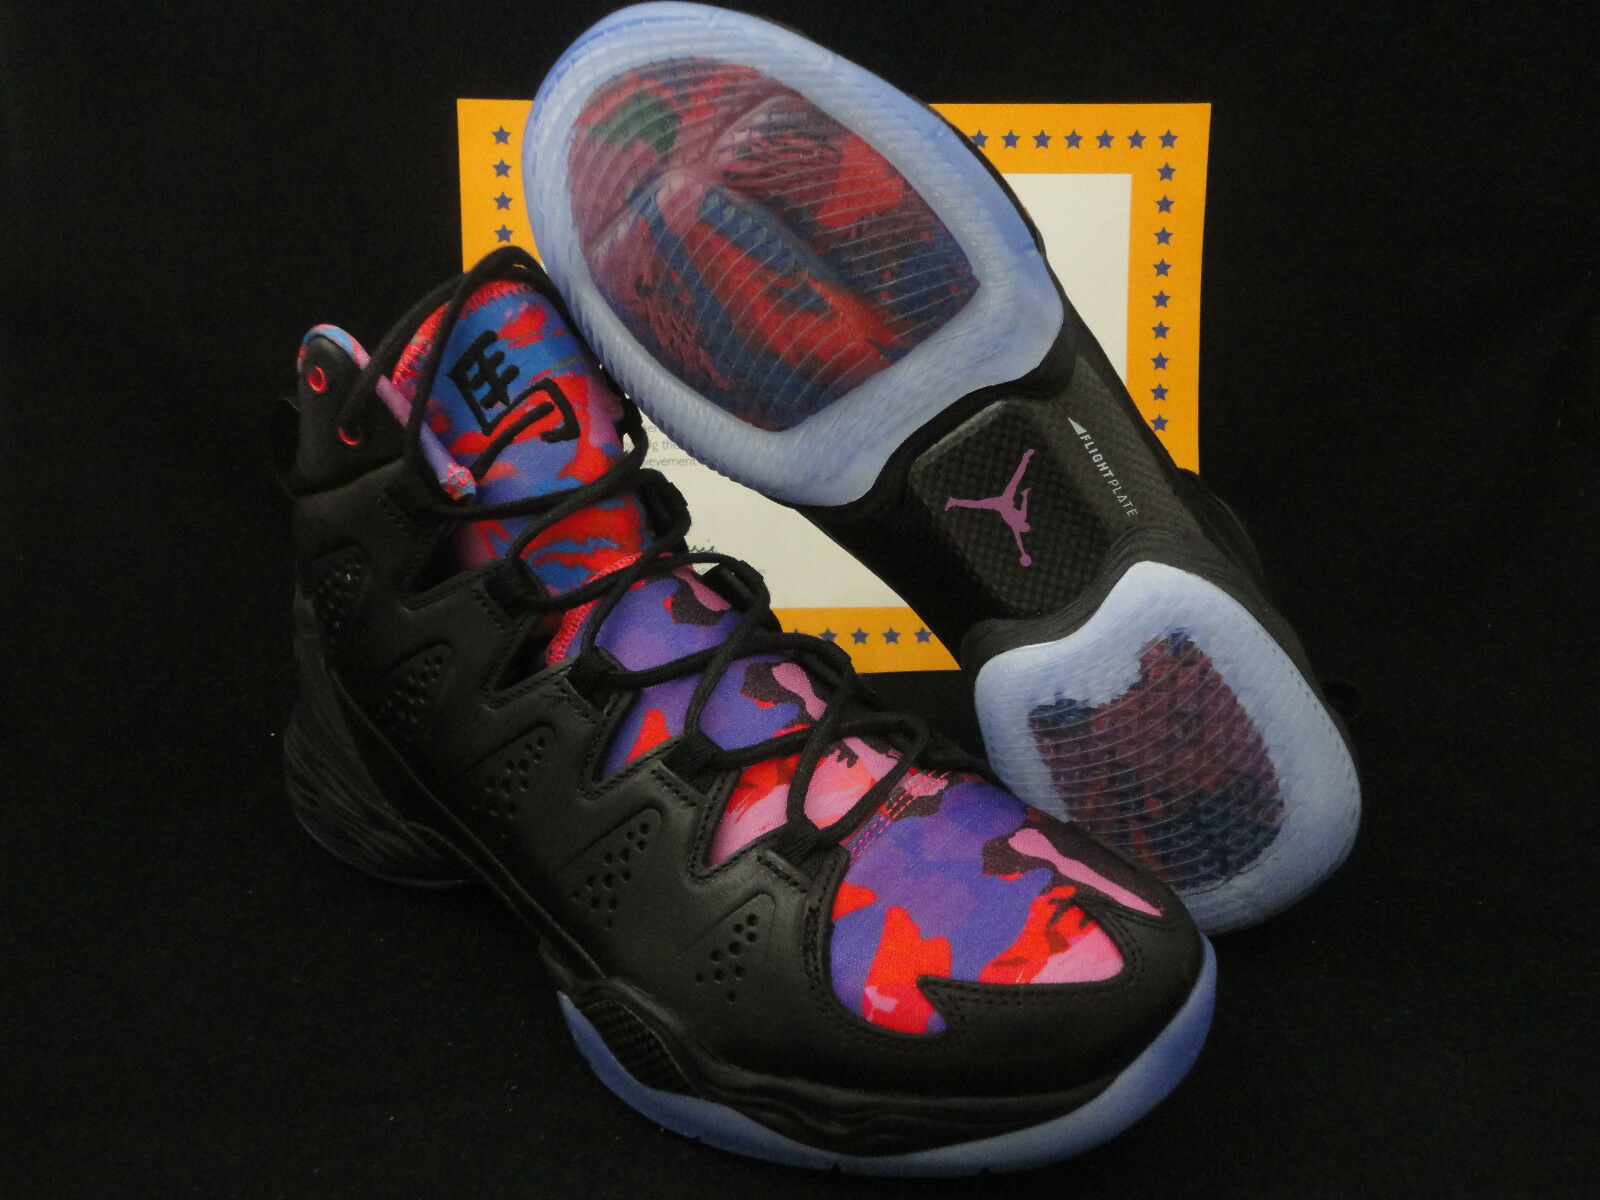 Nike Jordan Melo Melo Melo M10 YOTH, Limited Edition, Year Of The Horse, Size 14 cdb58a